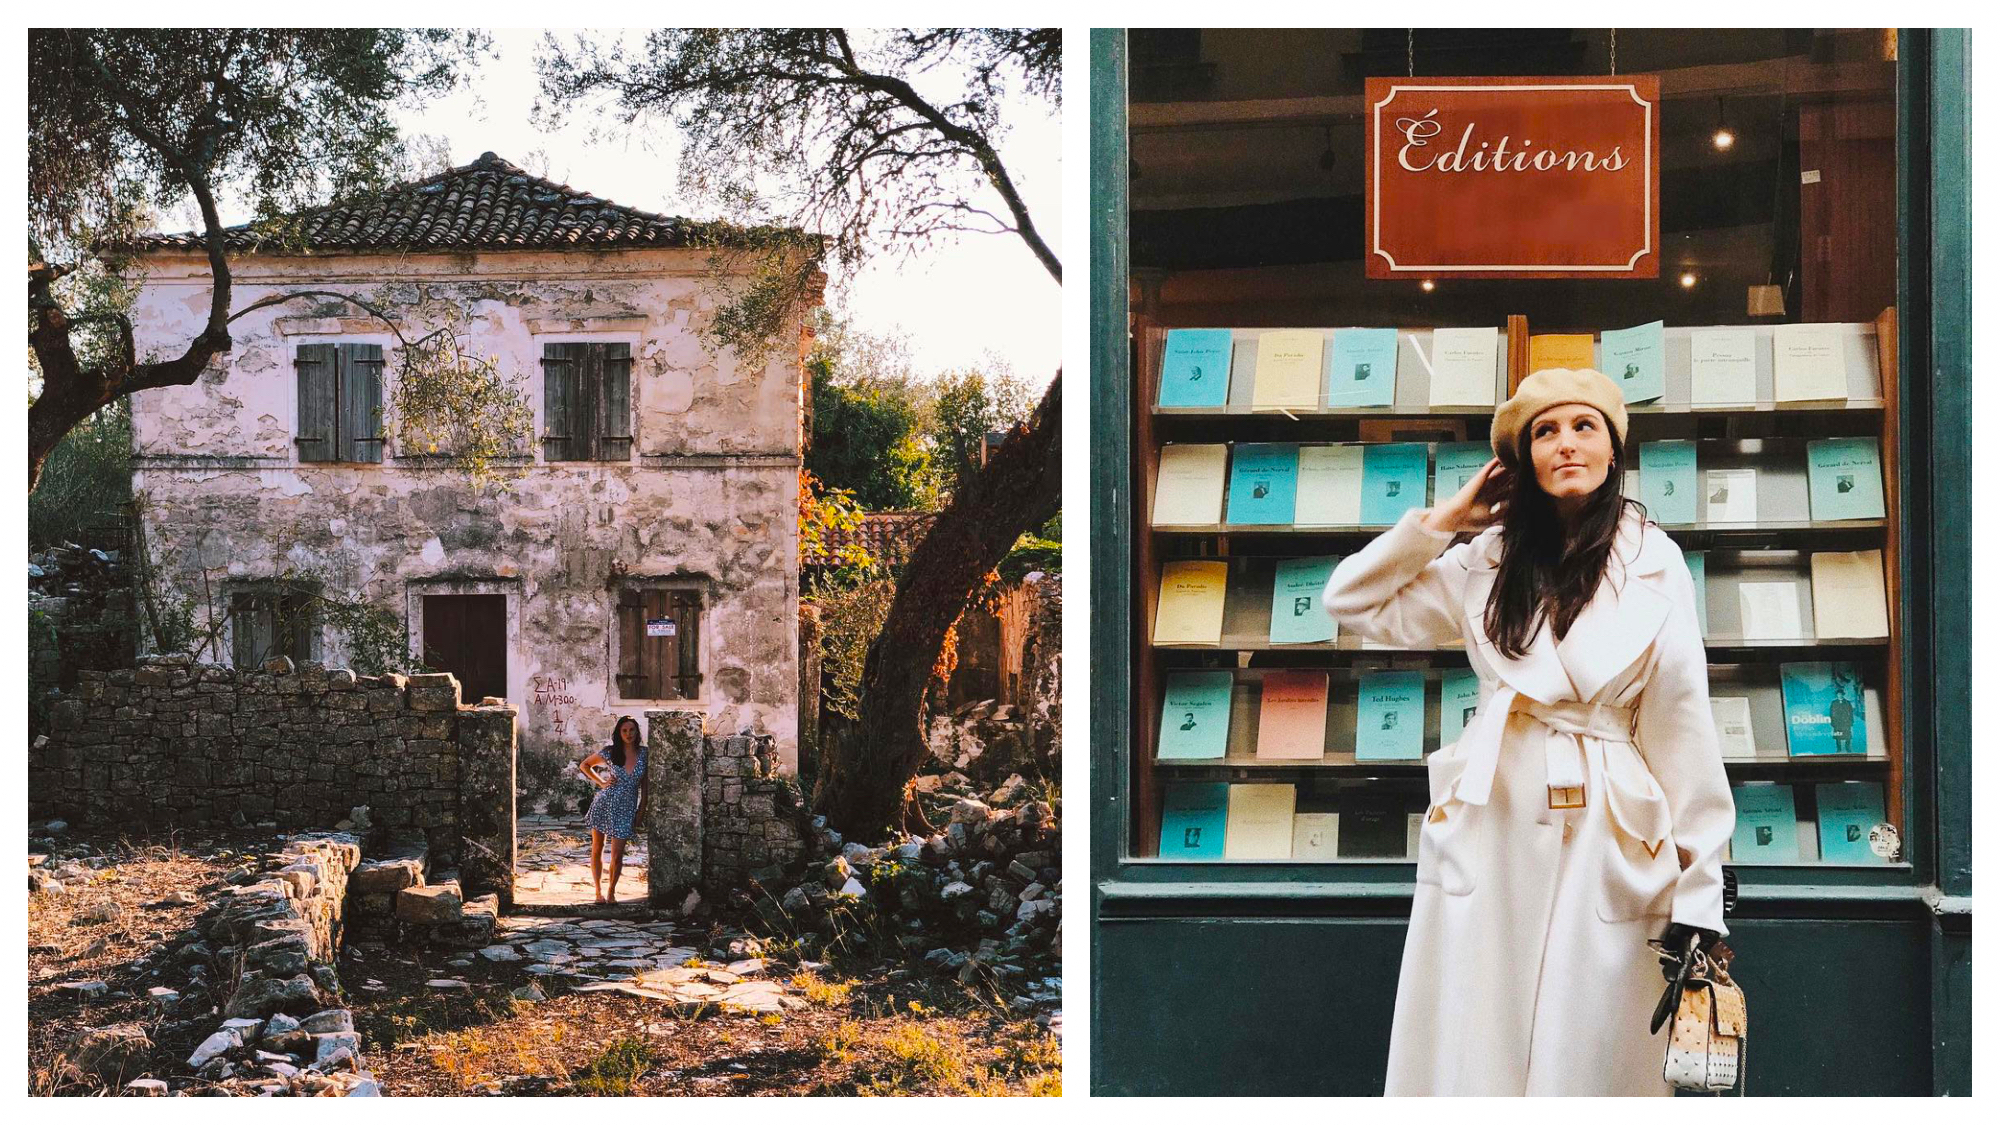 Left: Vanessa Grall, aka Messy Nessy, wears a blue dress and stands in front of an old house in the French countryside, Right: Vanessa Grall, aka Messy Nessy, wears a white coat and off-white hand, standing in front of a display of books in Paris.